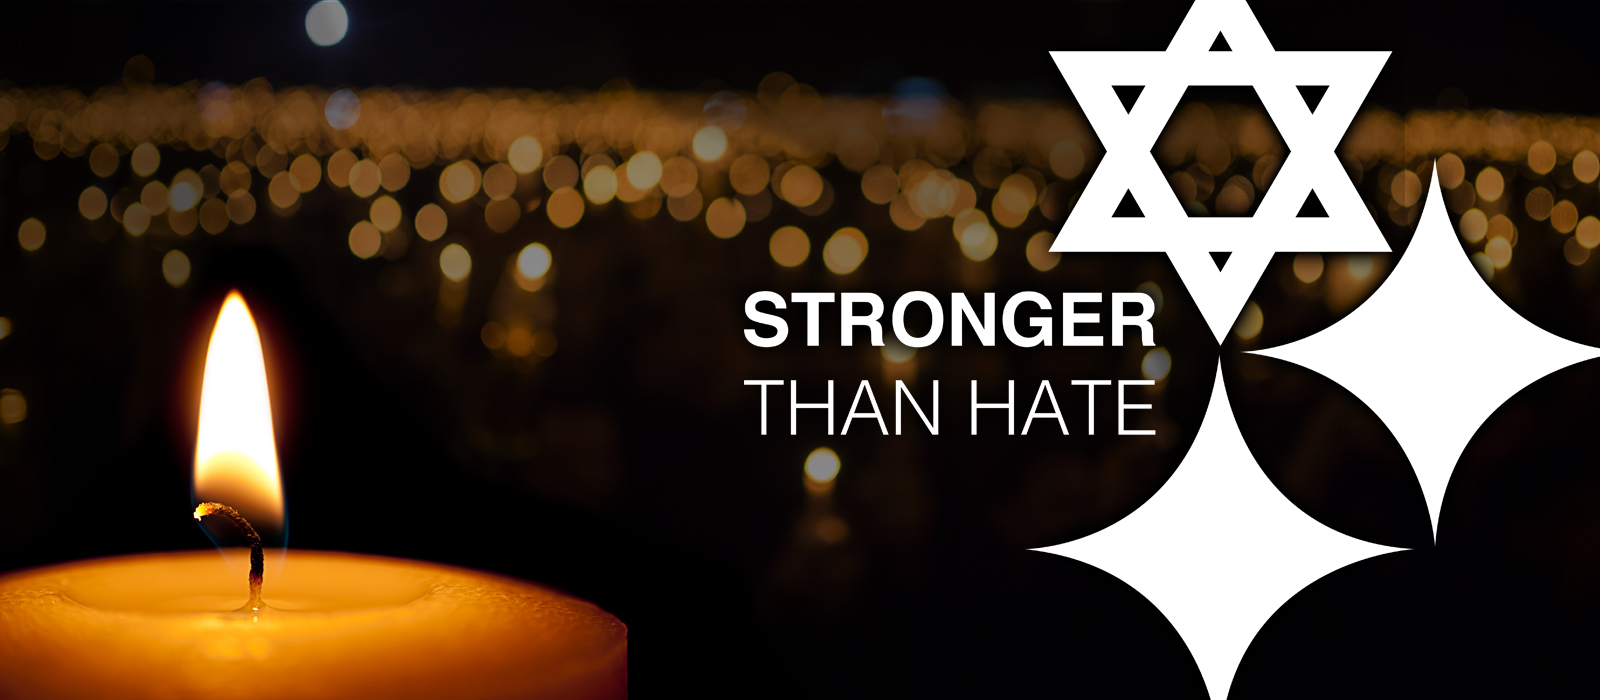 ONS Is Proud to Be Part of a City Stronger Than Hate